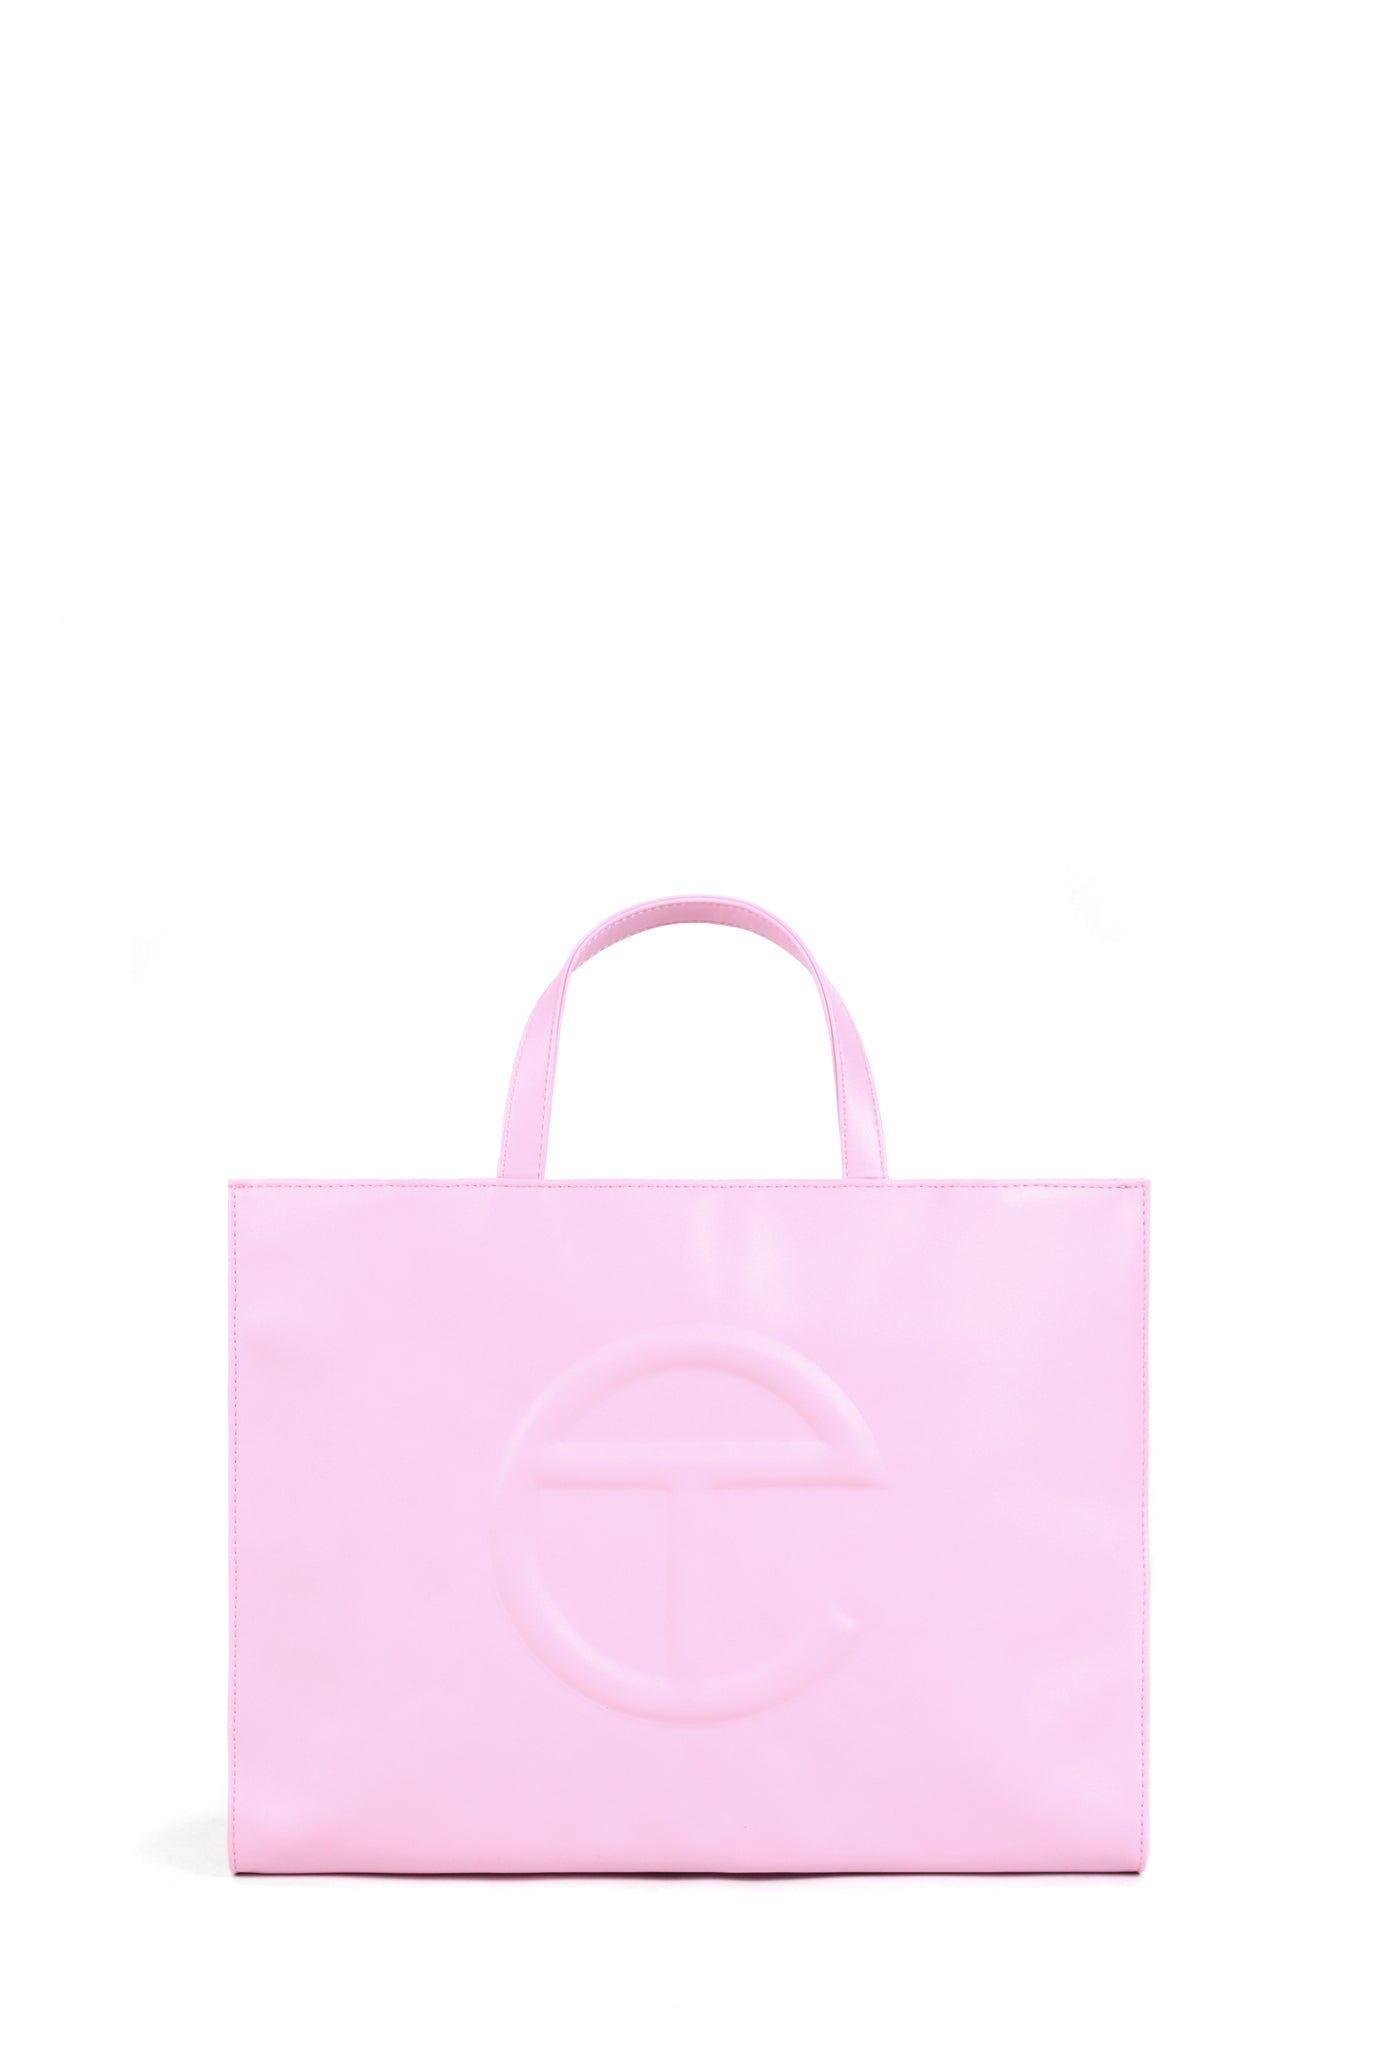 Telfar Medium Shopping Bag, Bubblegum Pink